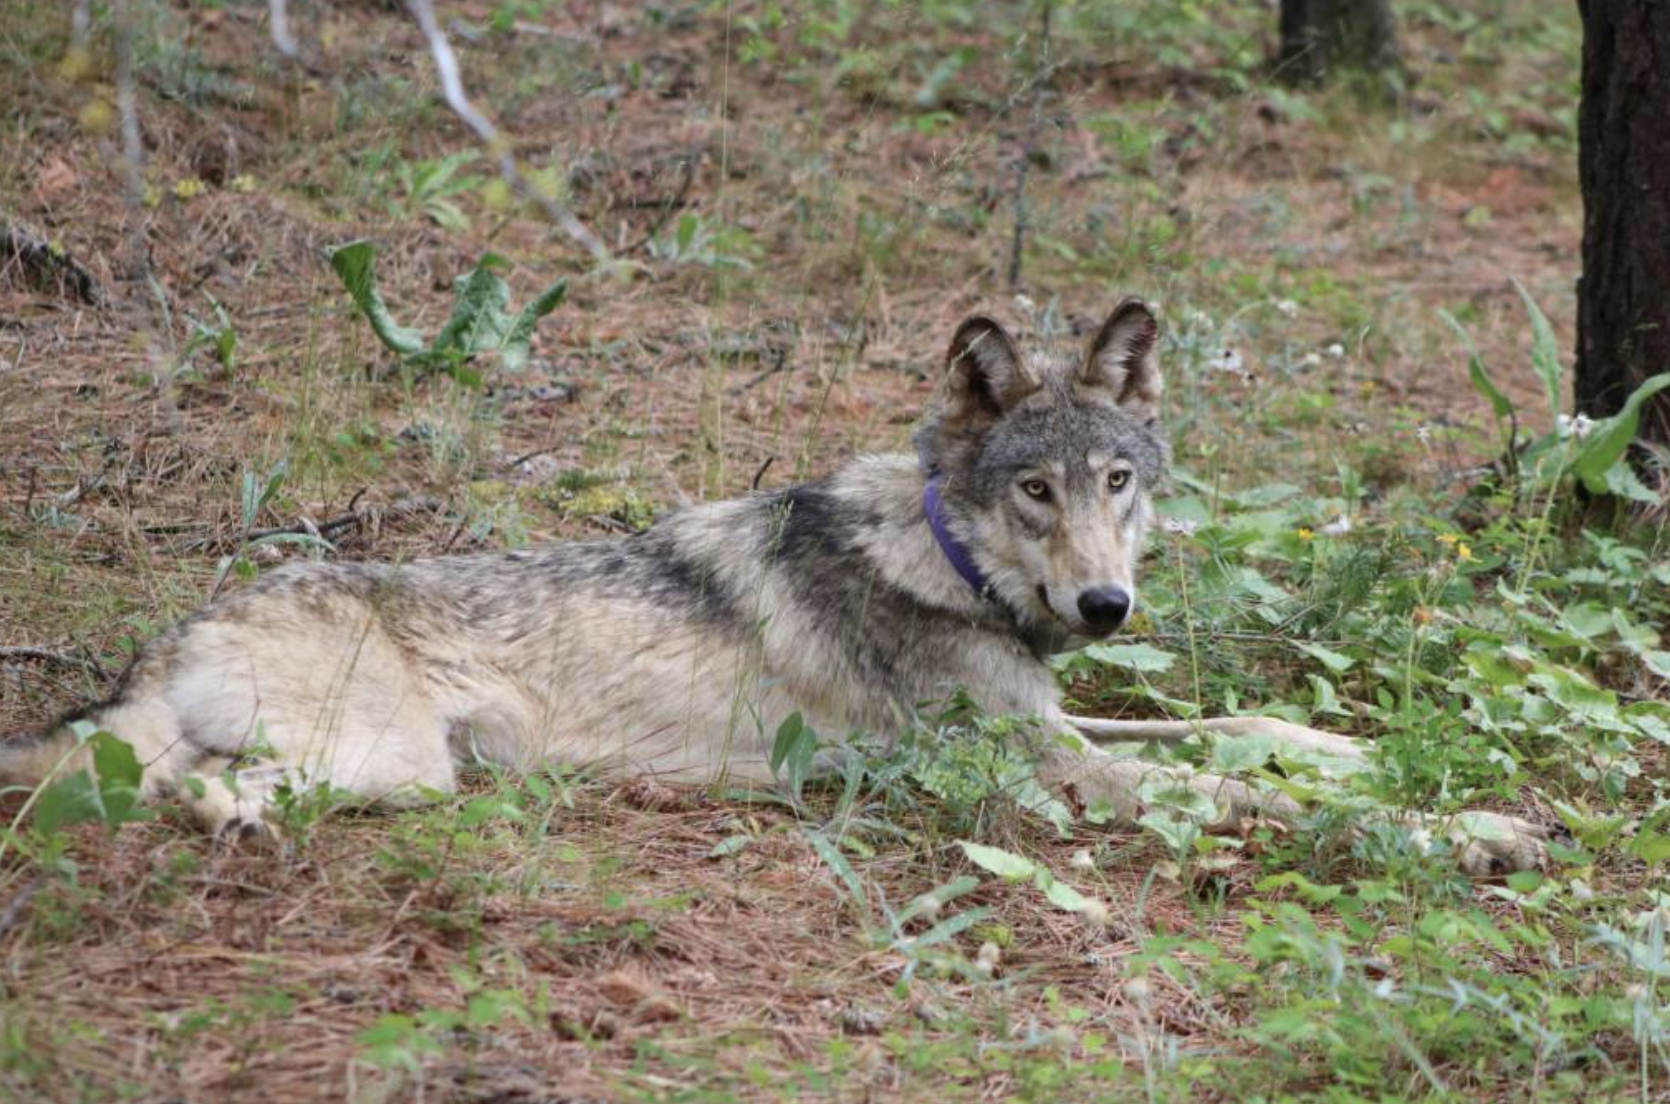 Wolf OR-93 as shown by California Department of Fish and Wildlife